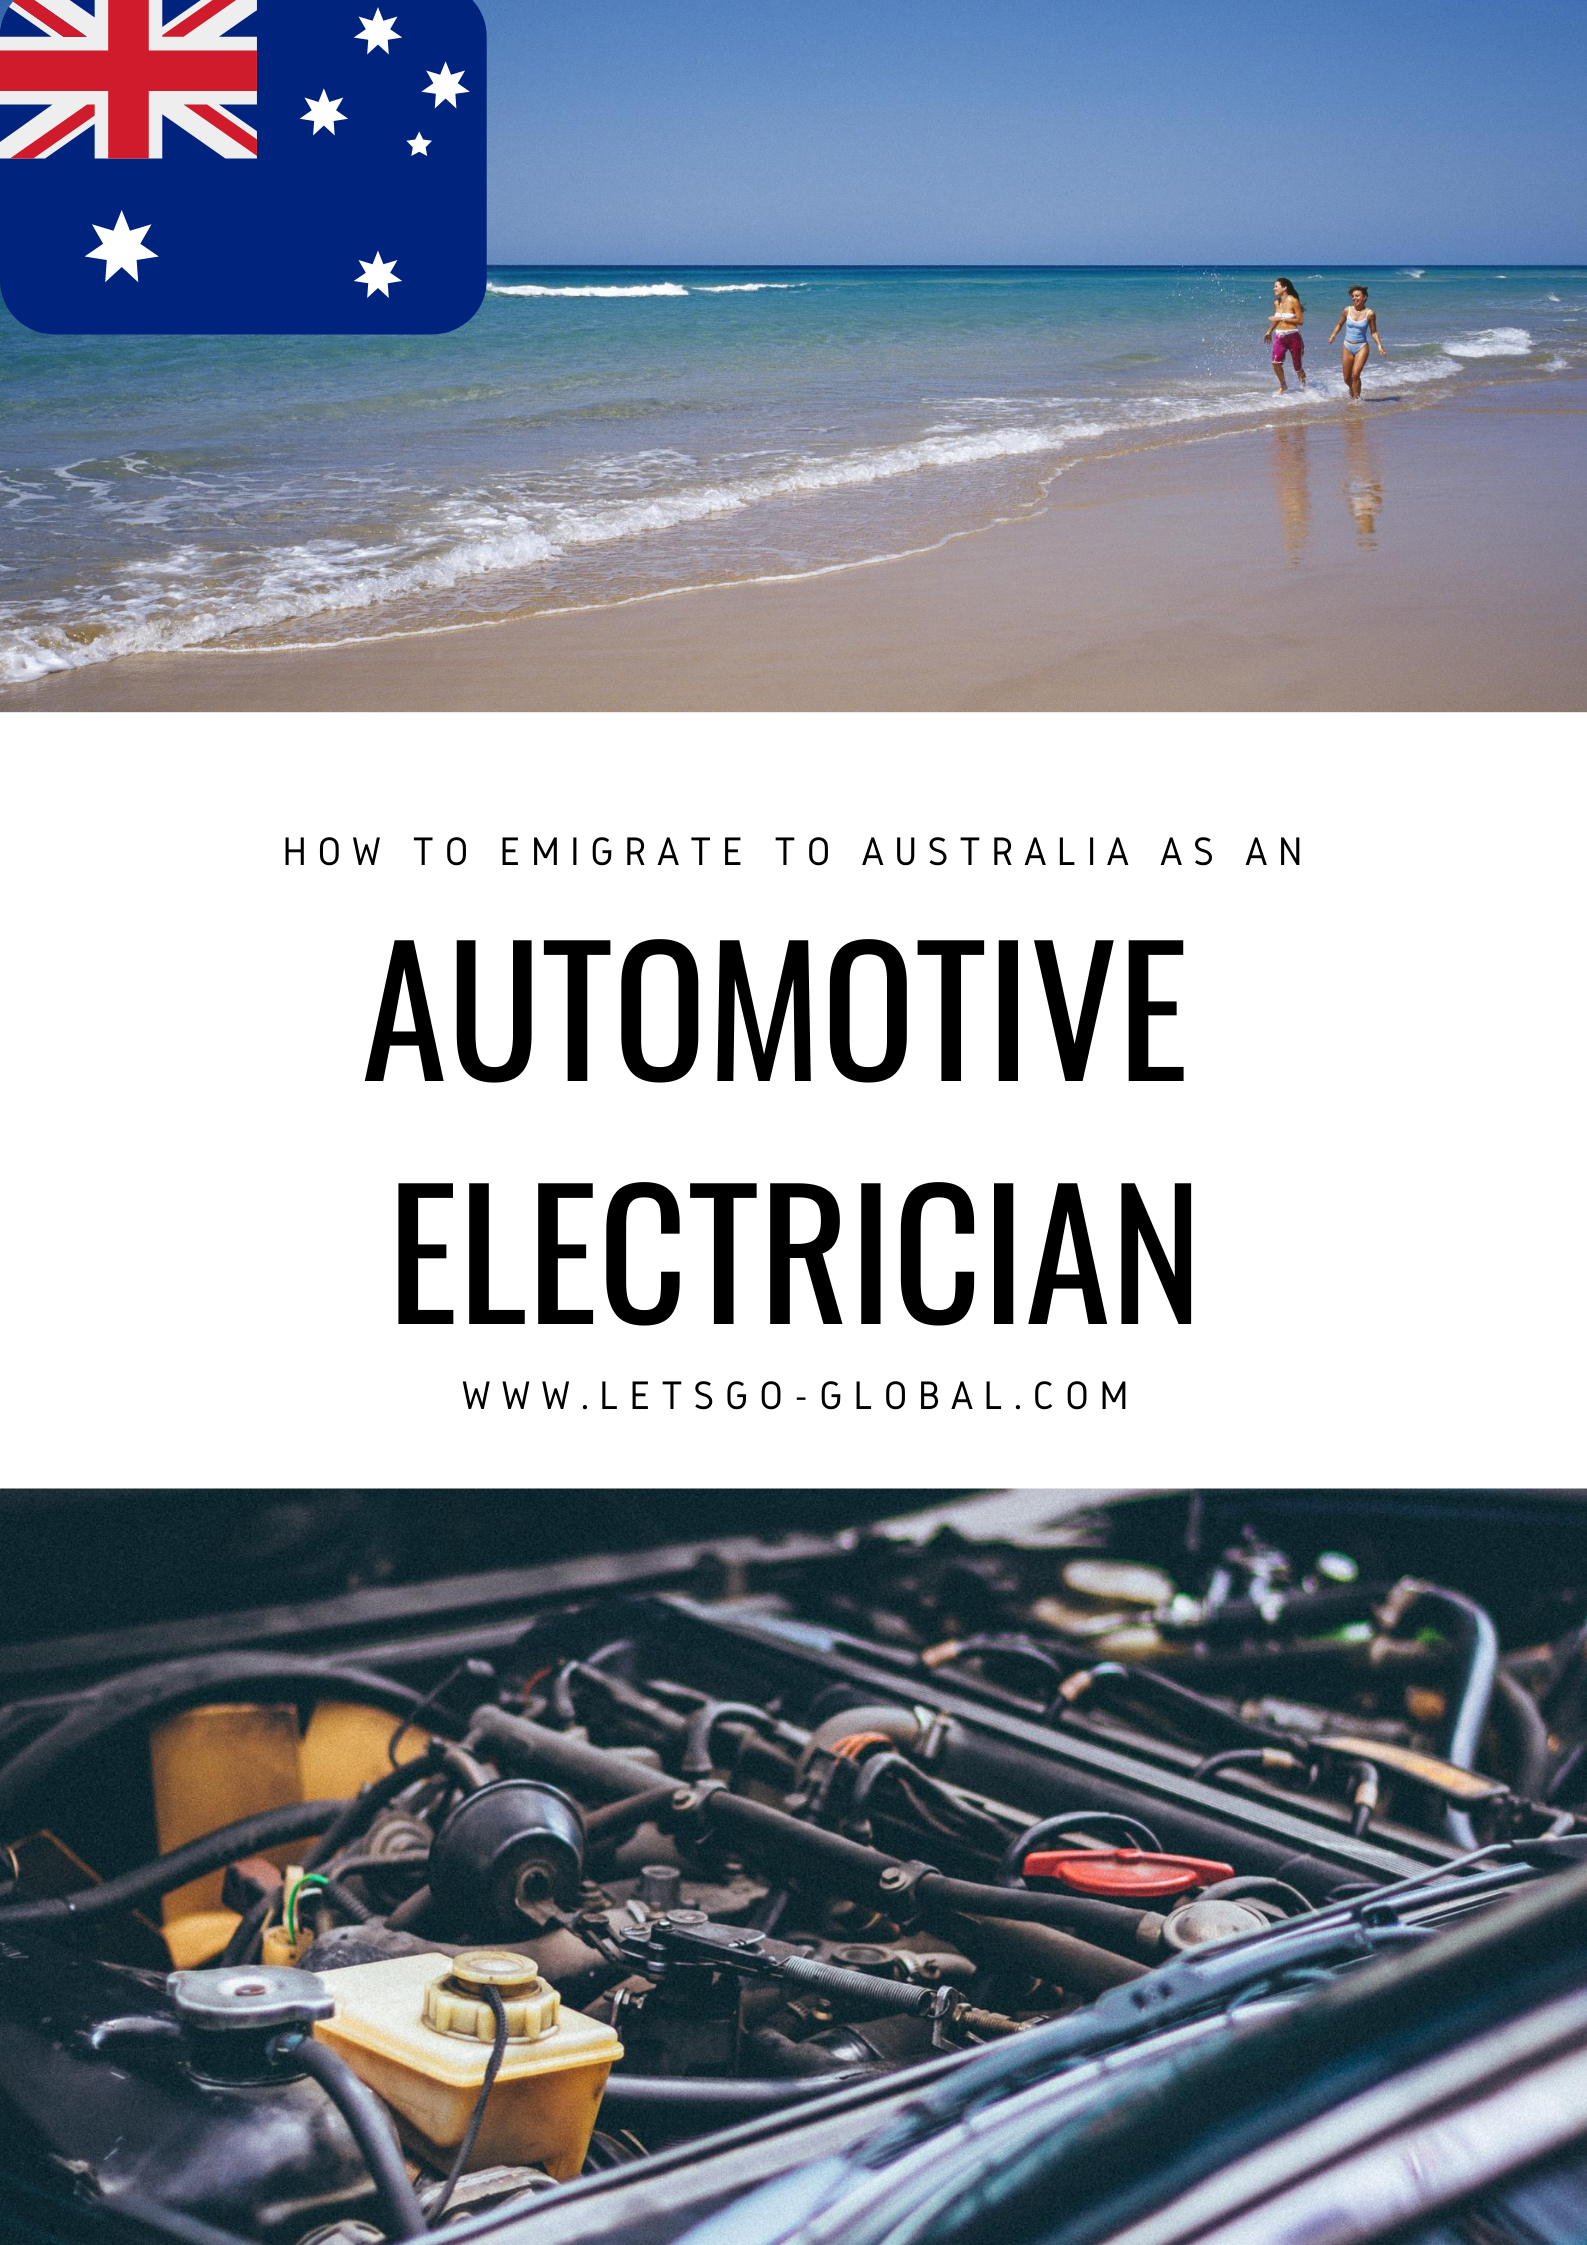 Migrate to Australia as an Automotive Electrician